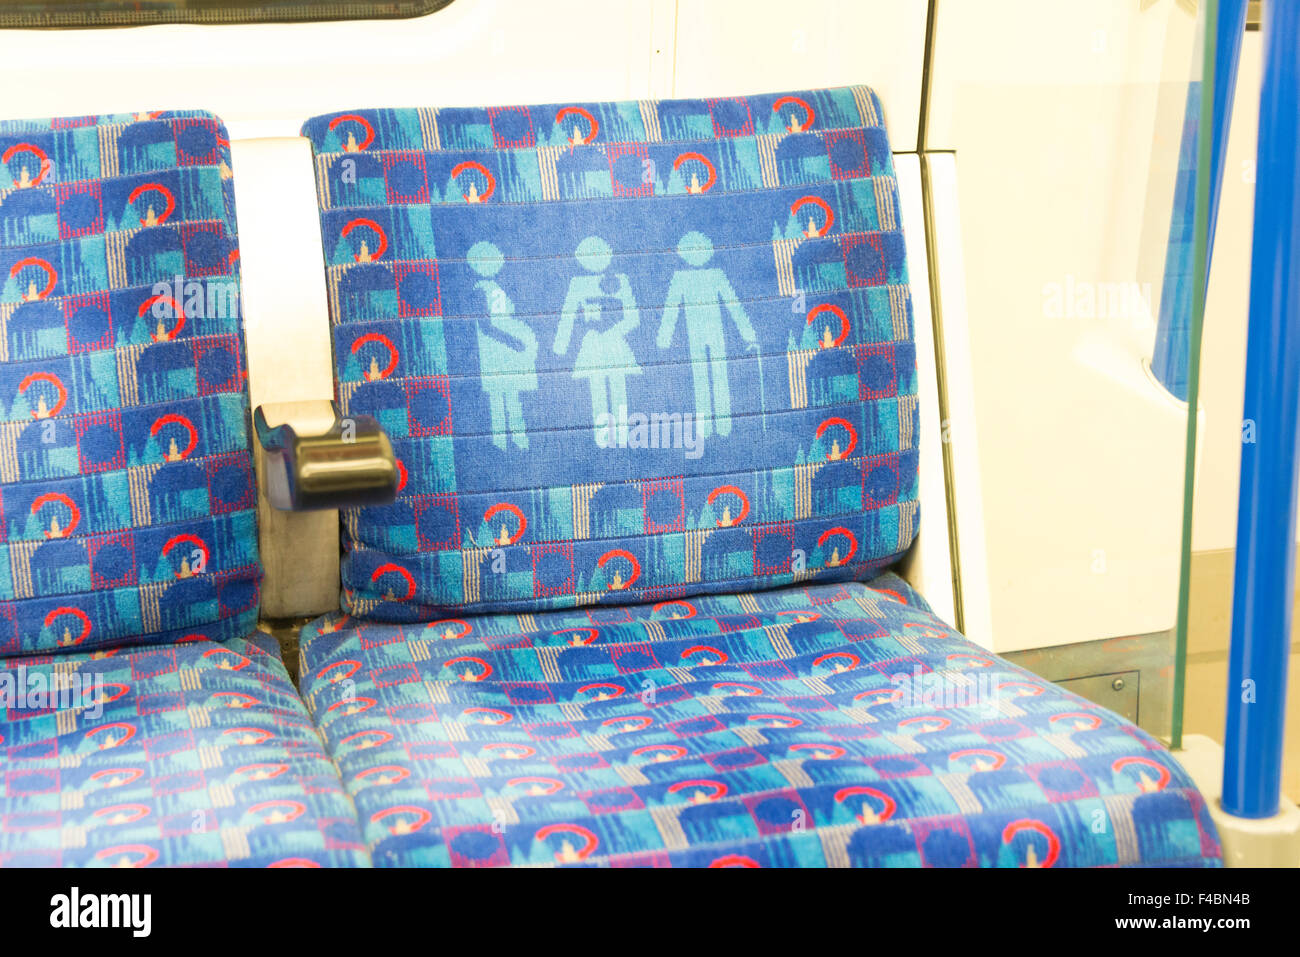 Seat for pregnant or elderly passengers on London Underground, Highgate, Greater London, England, United Kingdom - Stock Image